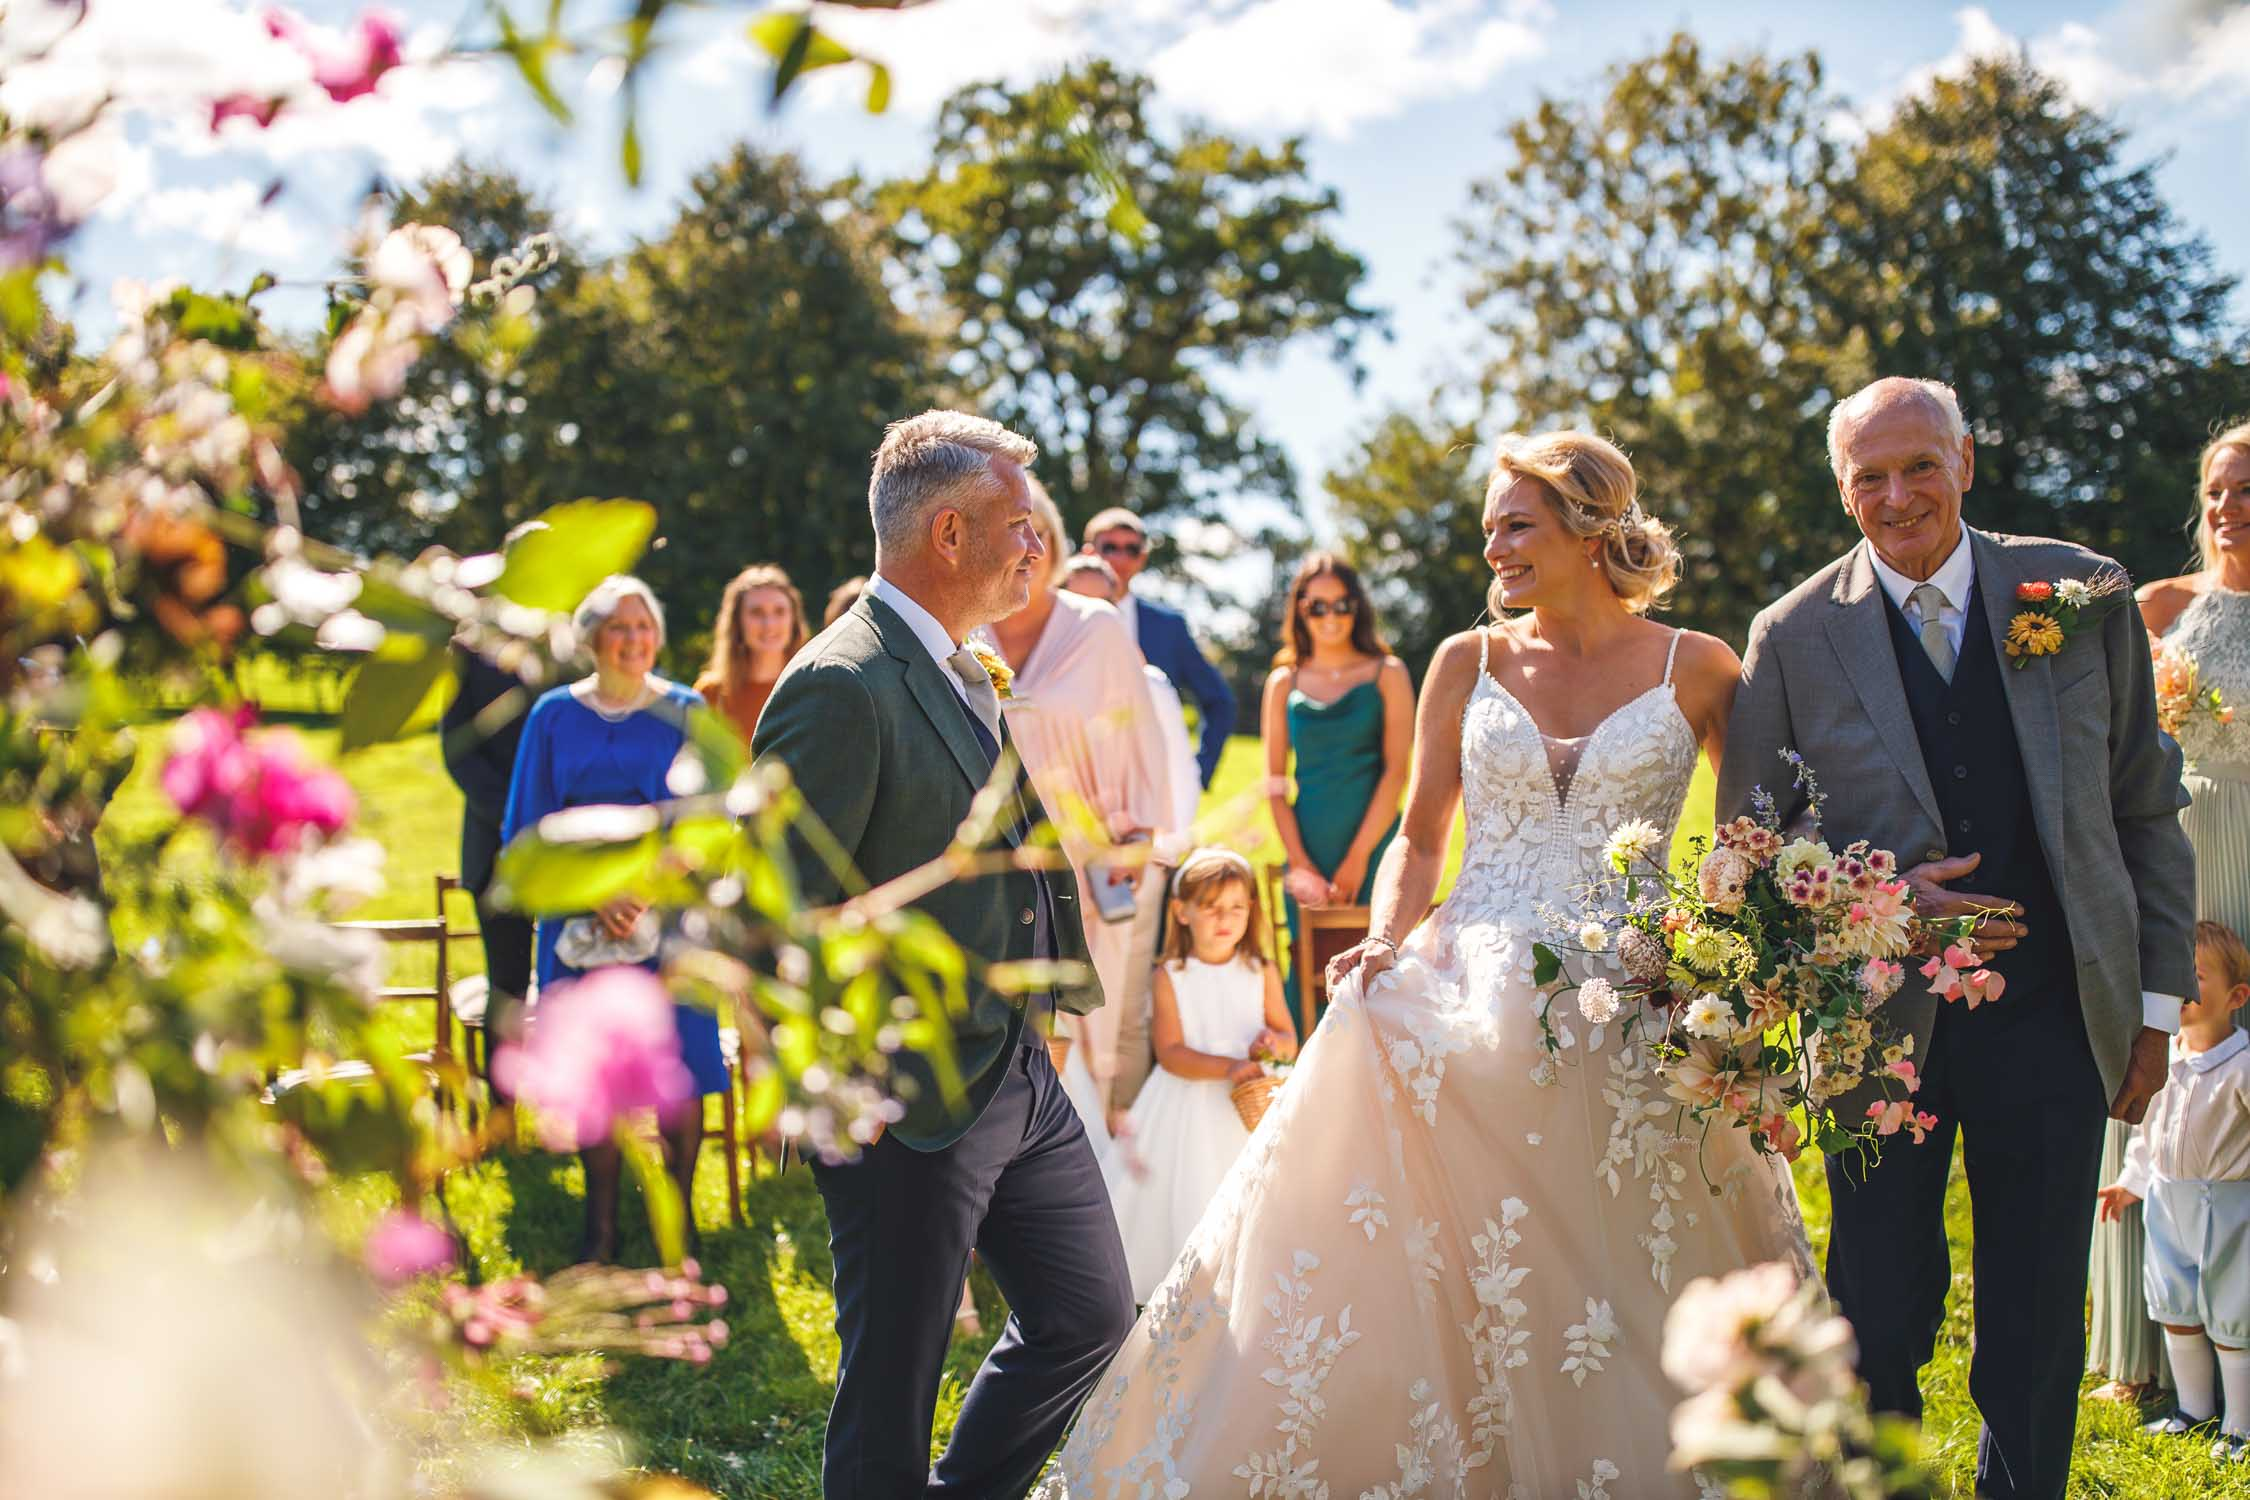 Summer Wedding Ceremony, Dewsall Court, Herefordshire, West Midlands